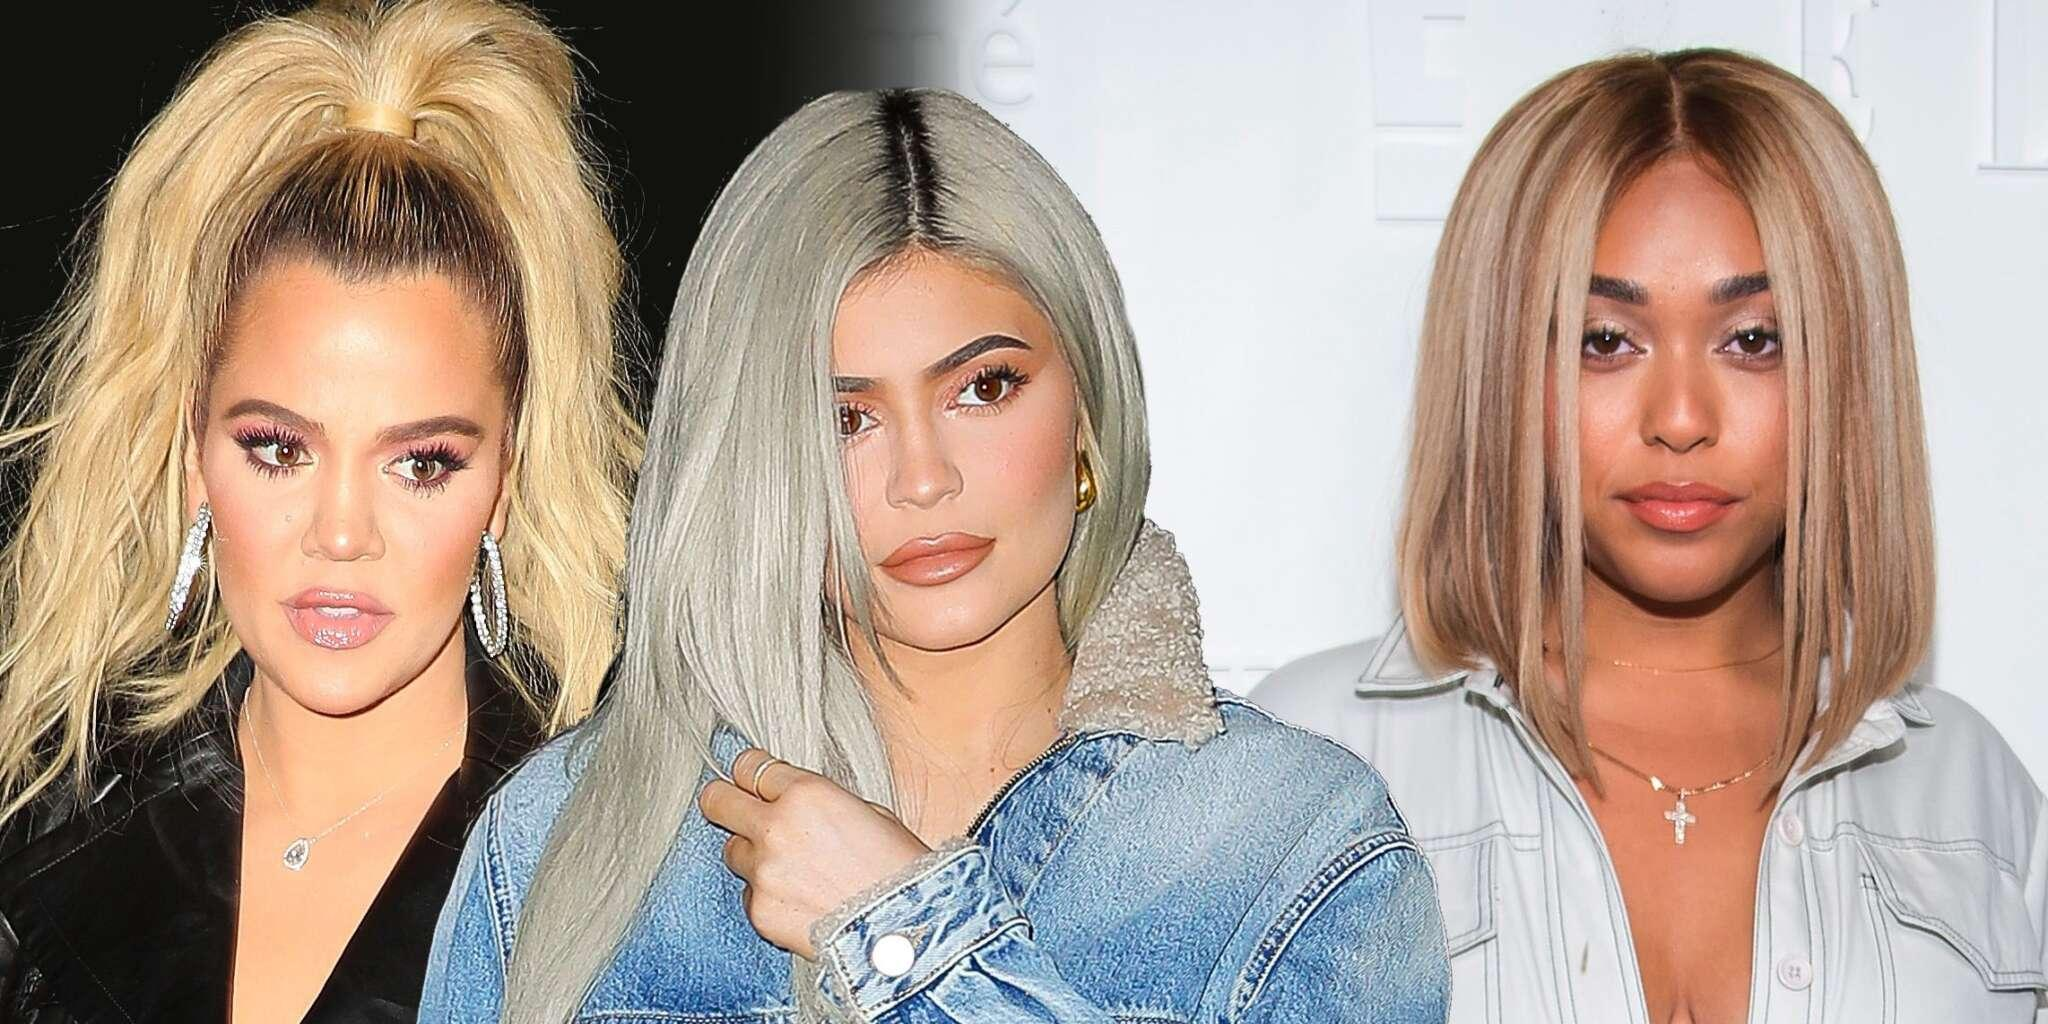 KUWTK: Khloe Kardashian Responds To Accusations She Won't 'Allow' Sister Kylie Jenner To Be Friends With Jordyn Woods Again!